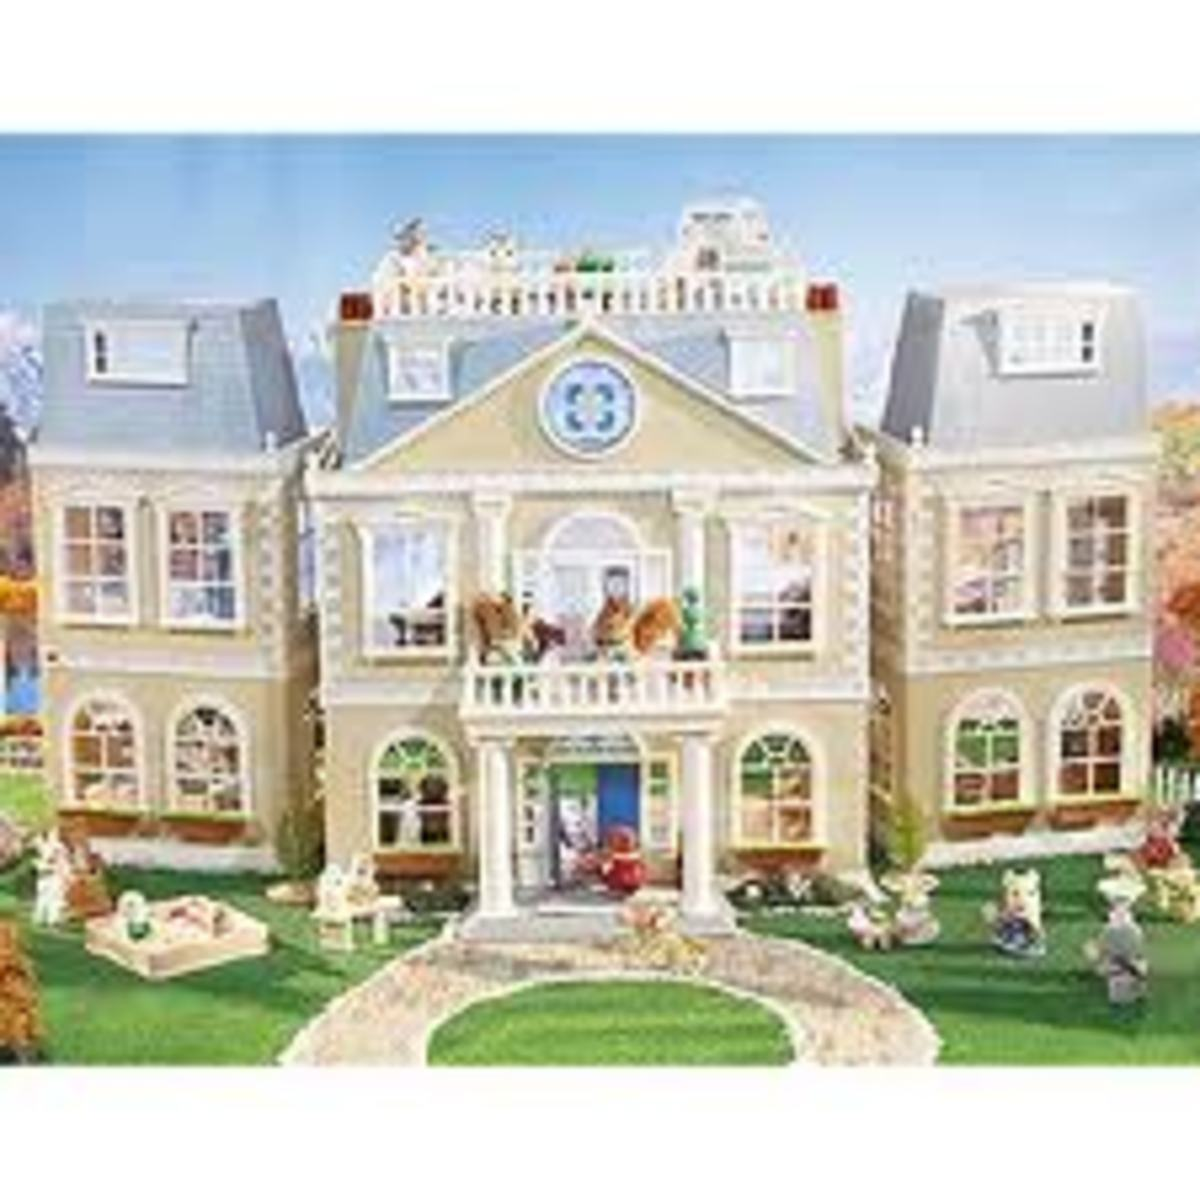 Calico Critters Cloverleaf Manor House